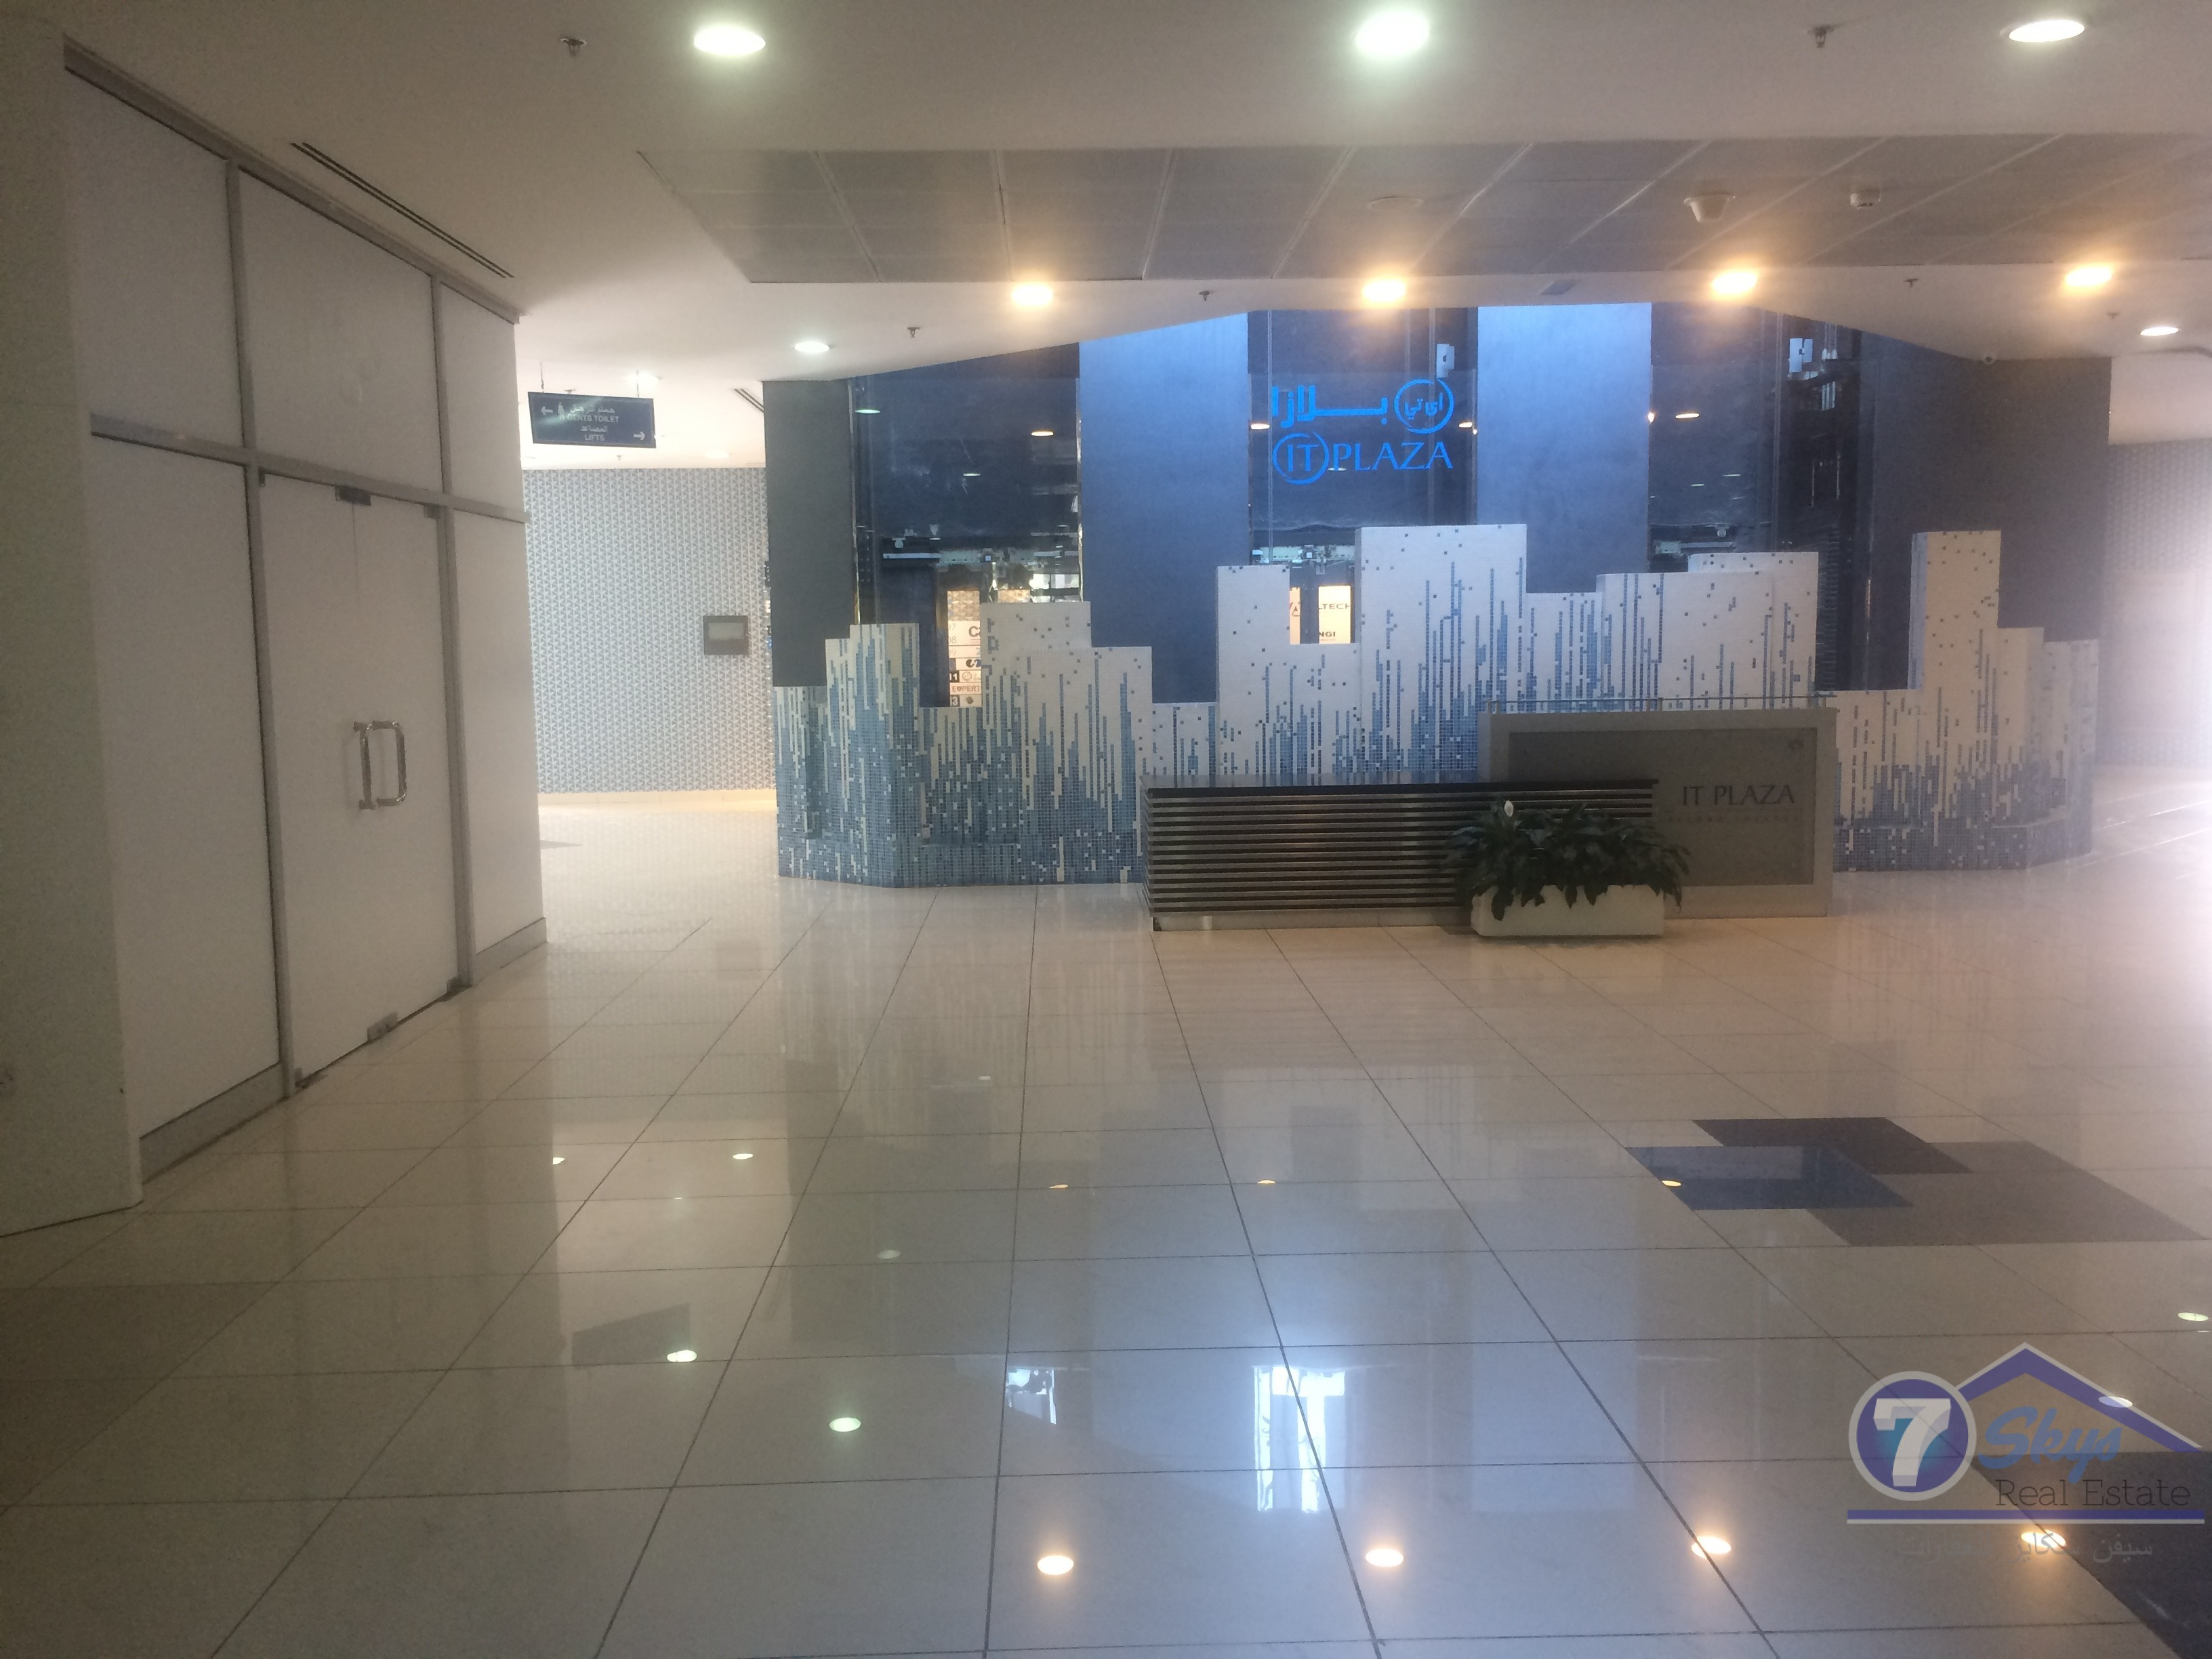 good-deal-vacant-office-for-sale-it-plaza-in-dso